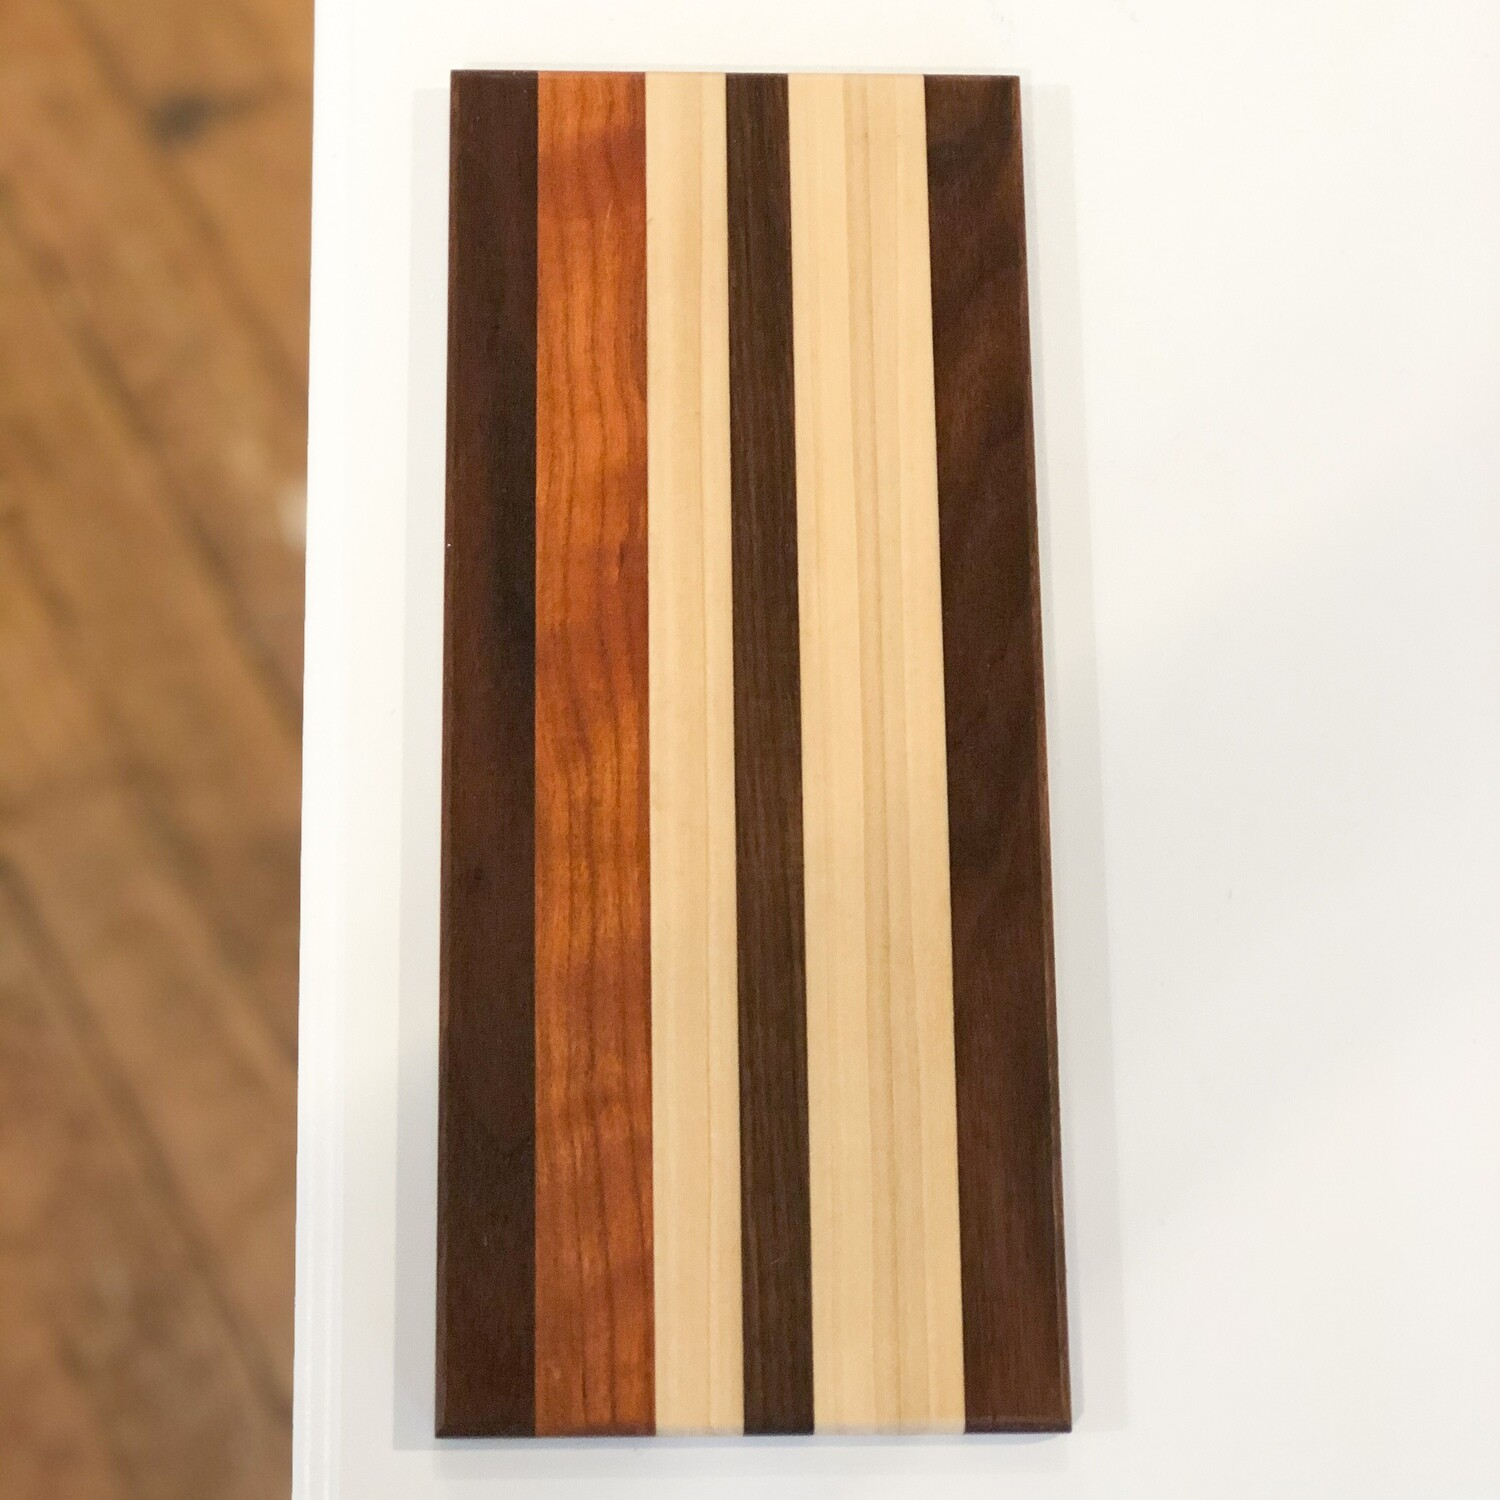 Crhs-102 Cutting Board Wood Thin Up To 8X12